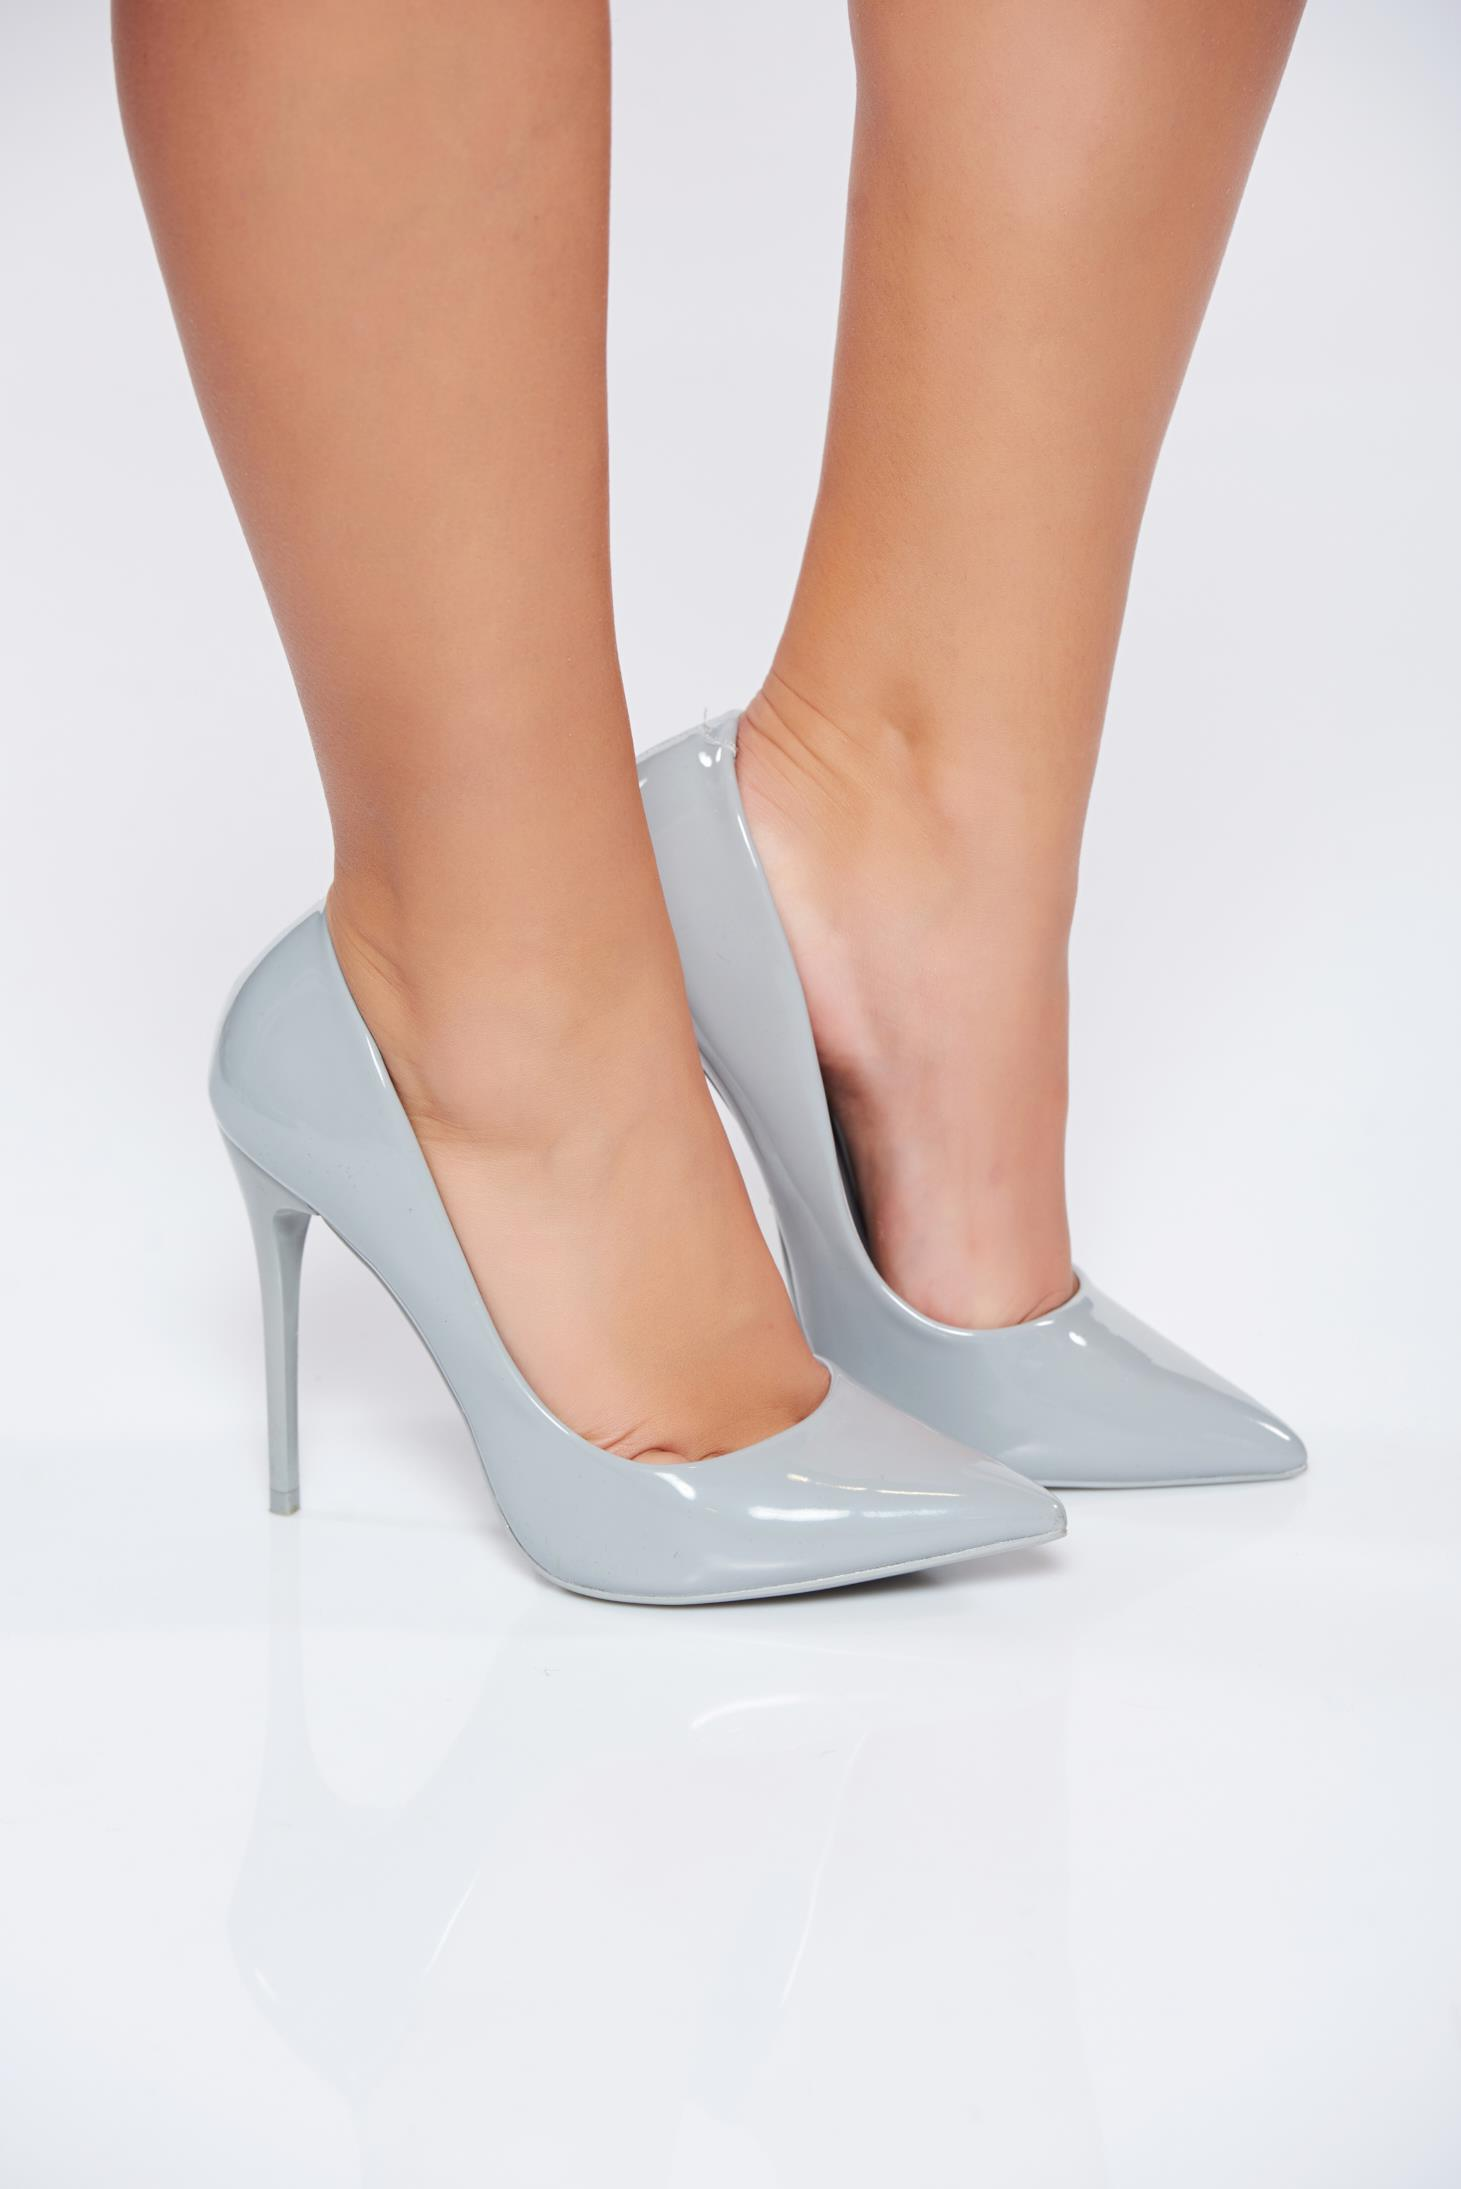 6dec9c3375b Grey office elegant high heels stiletto shoes from ecological varnished  leather